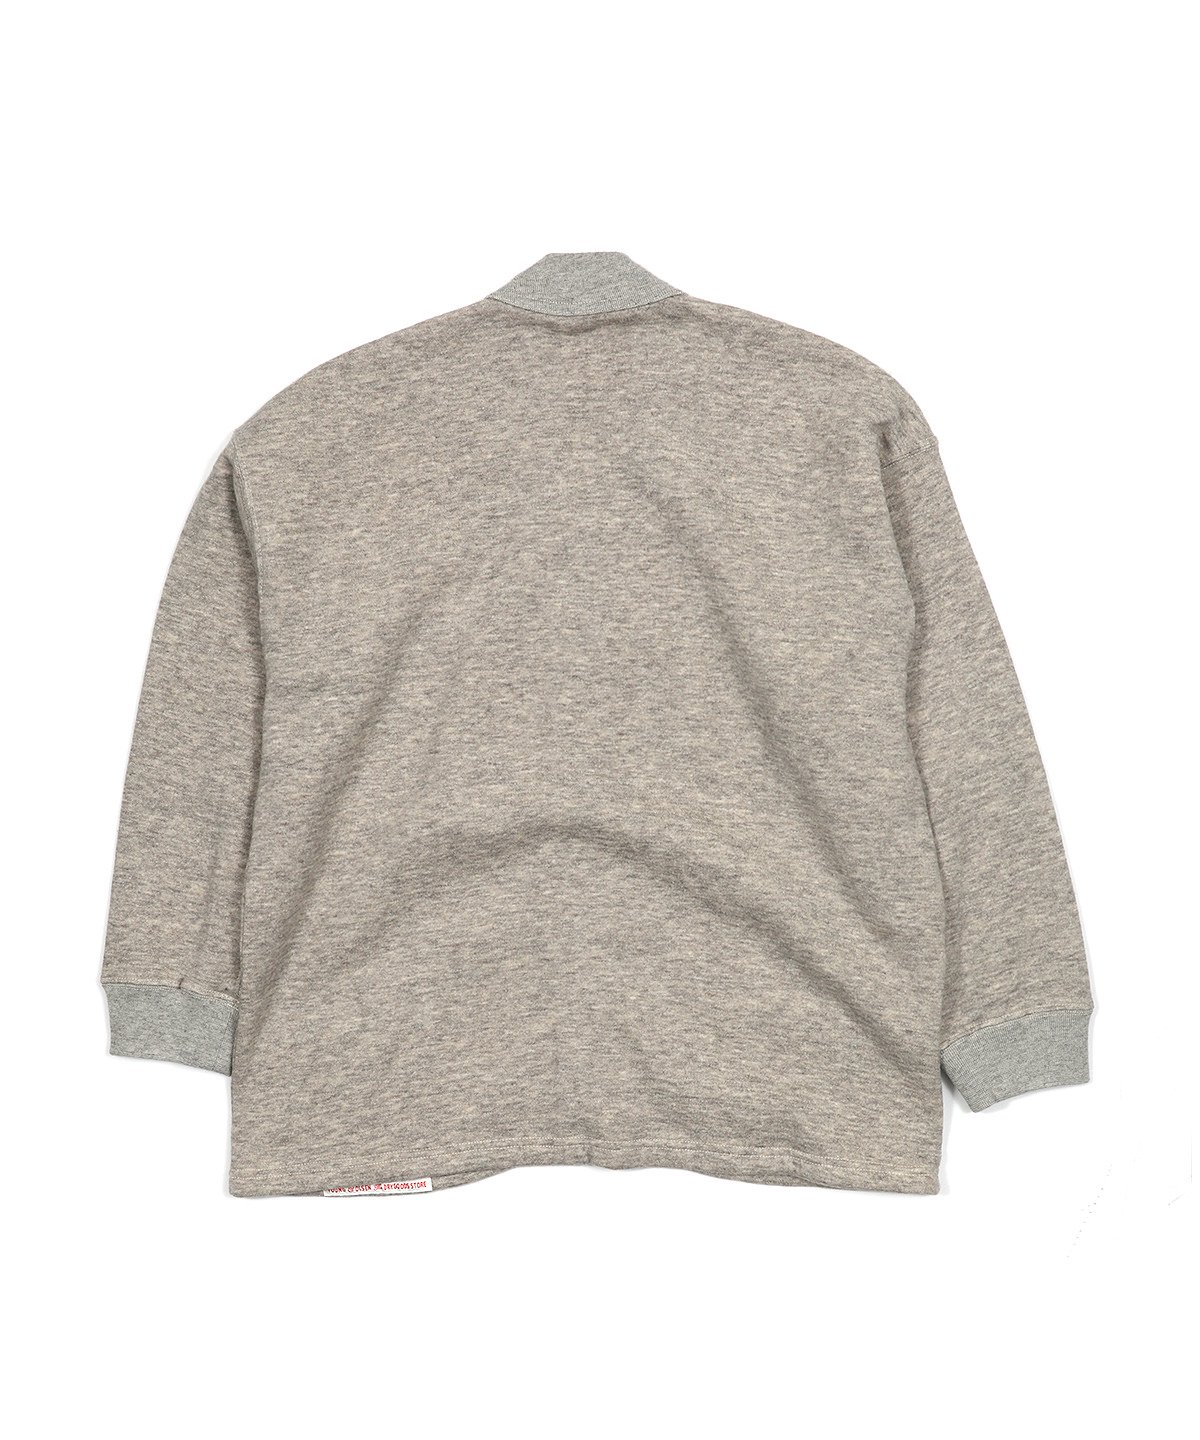 YAK TERRY SWEAT CARDIGAN